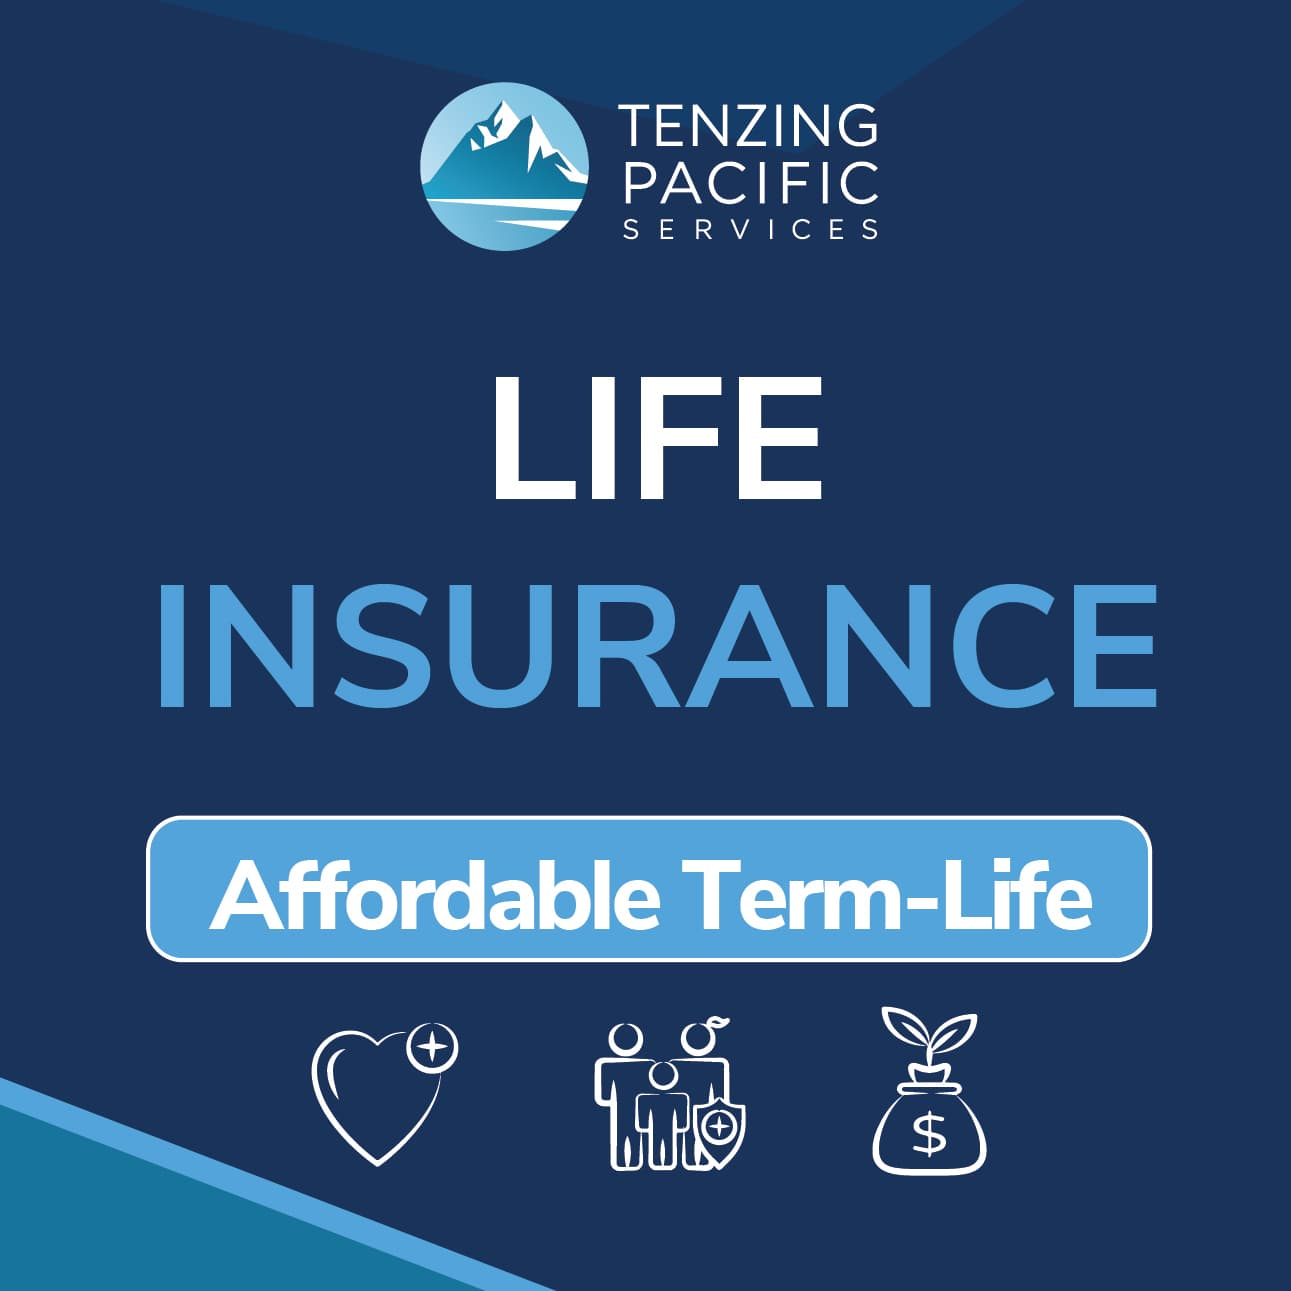 Life Insurance Tenzing Pacific Services square